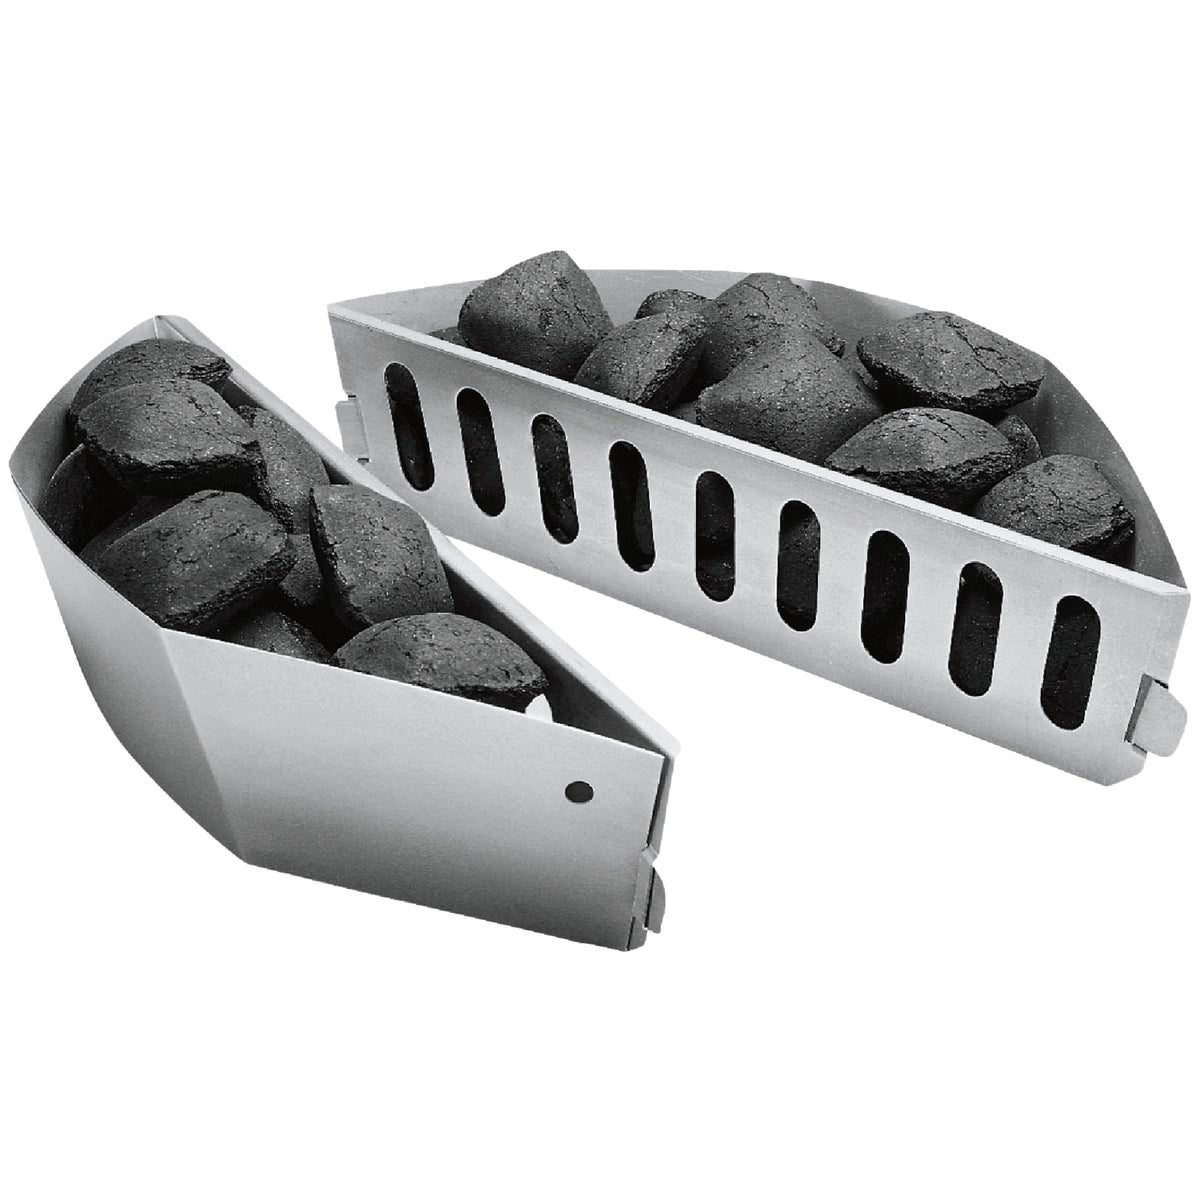 CHARCOAL BASKET - 7403 by Weber